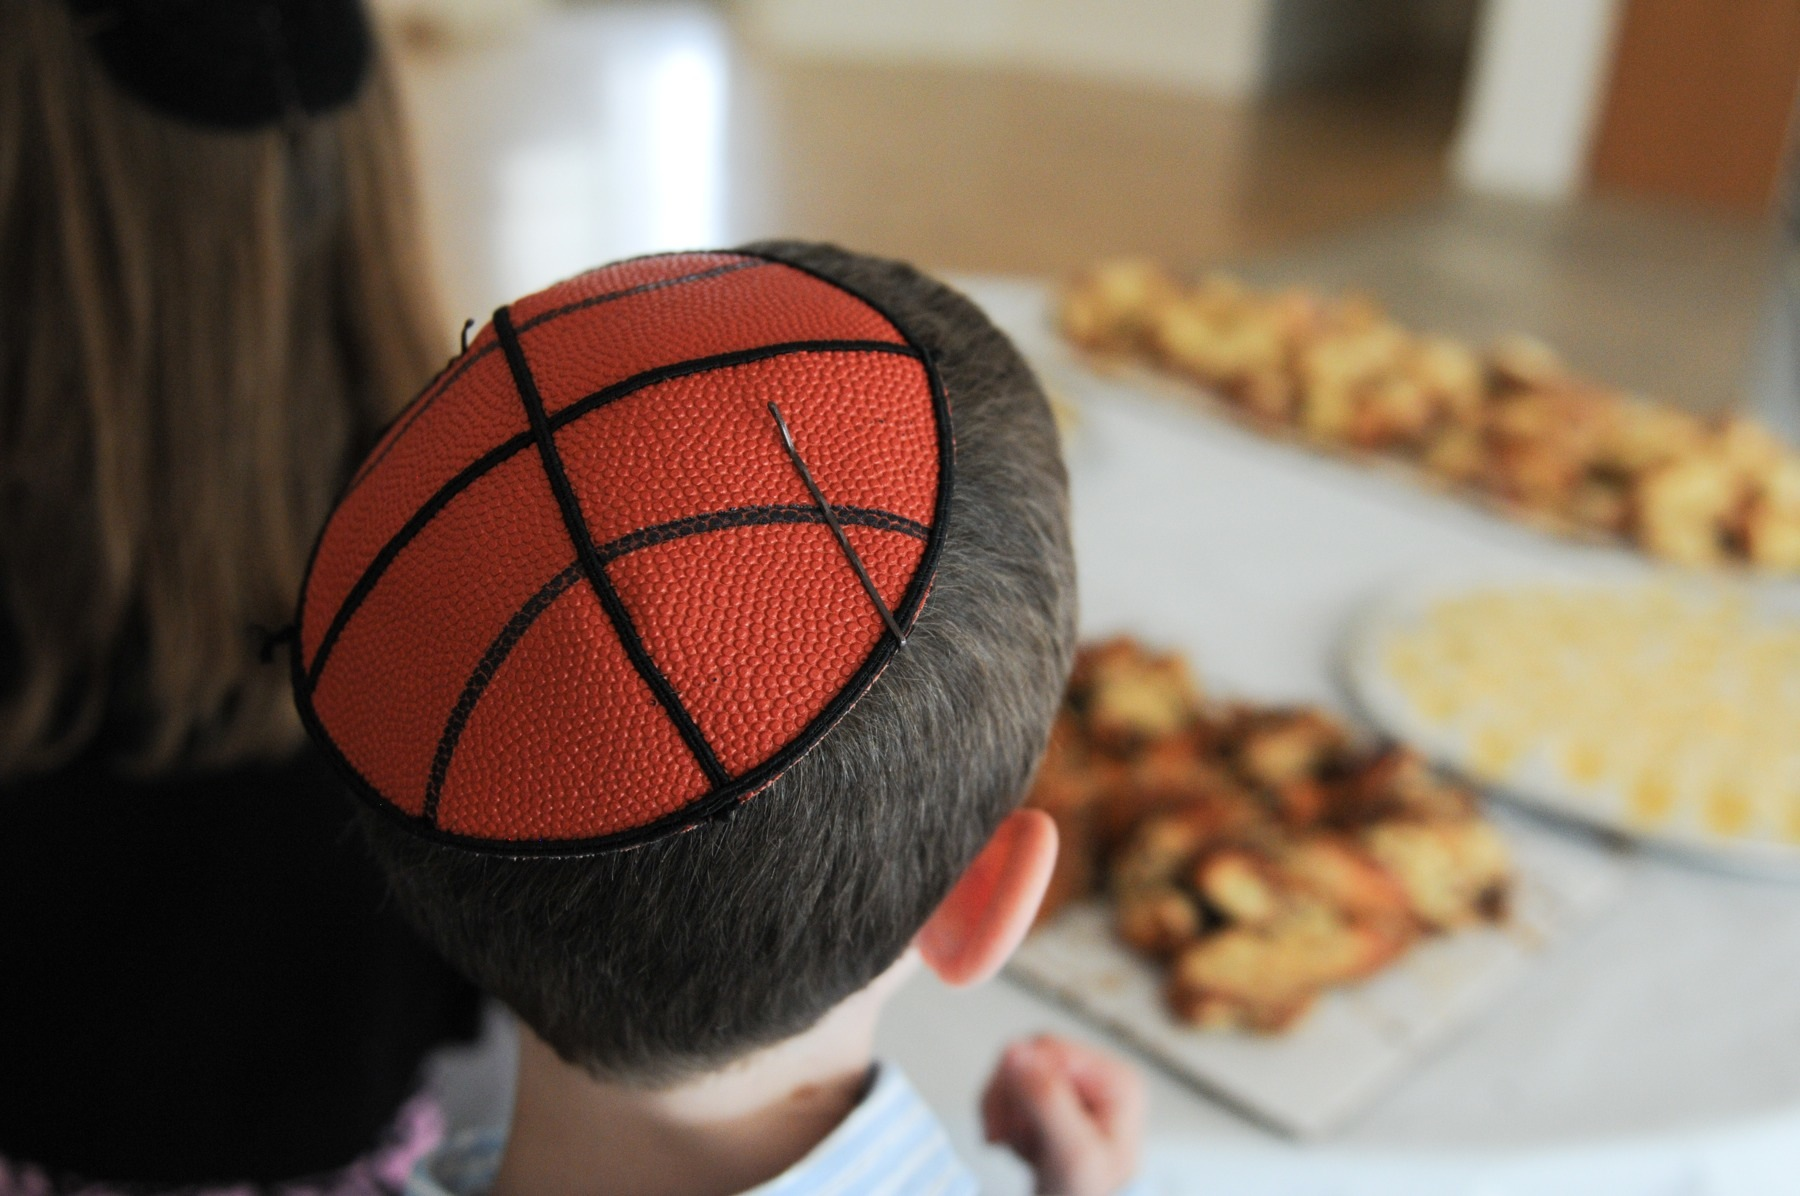 Bay Area East Bay Creative and Artistic Mitzvah Party Image / Photo